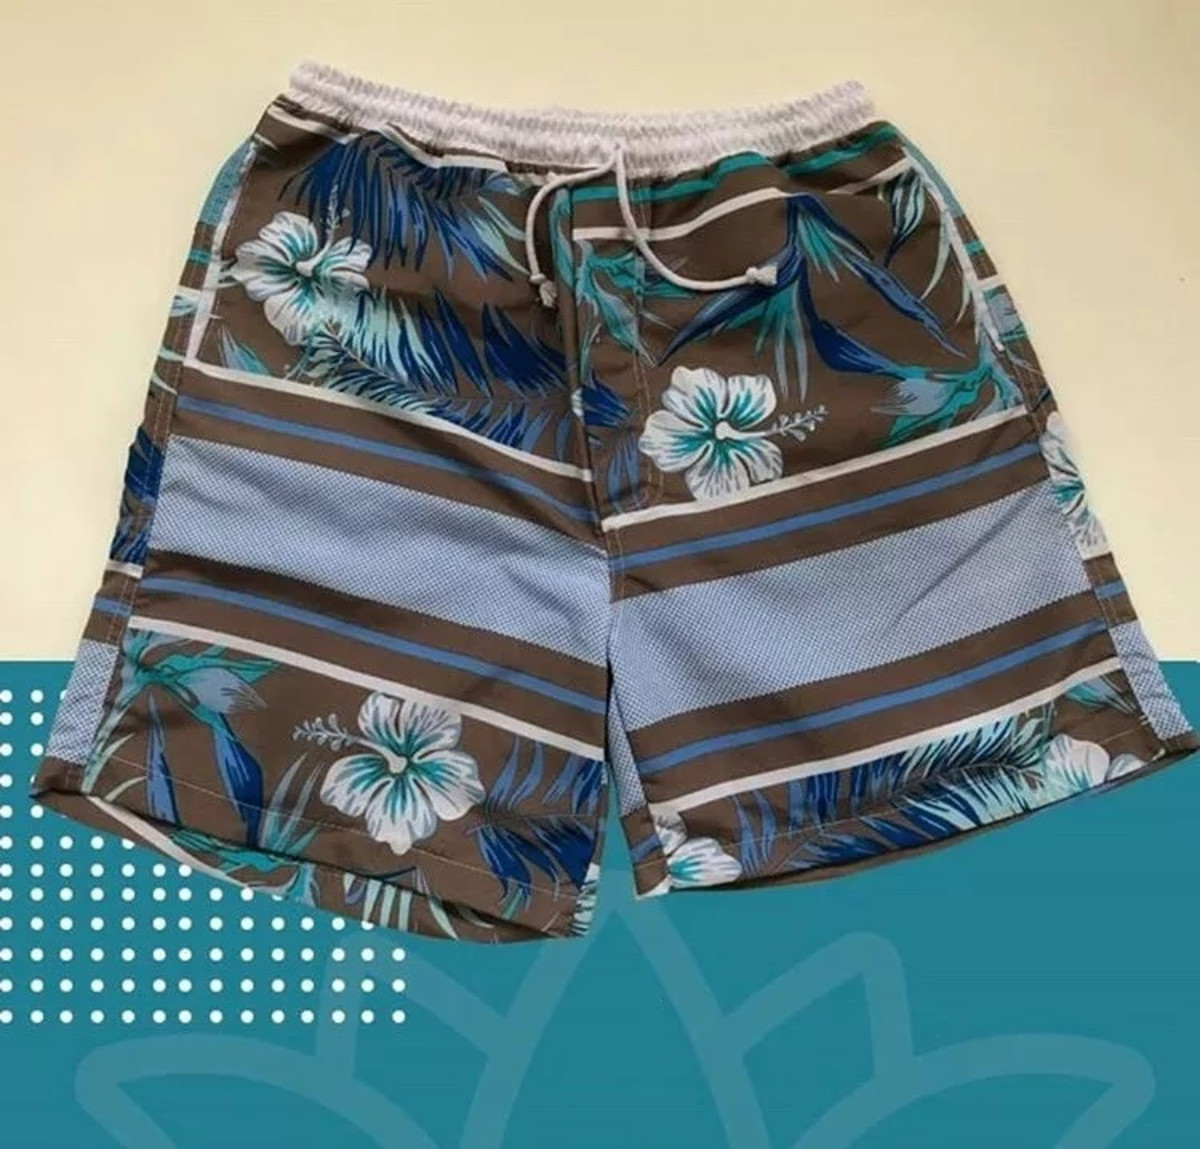 2225f4be0 Short Masculino Estampado Floral Blue Tactel Praia Bermuda no Elo7 ...